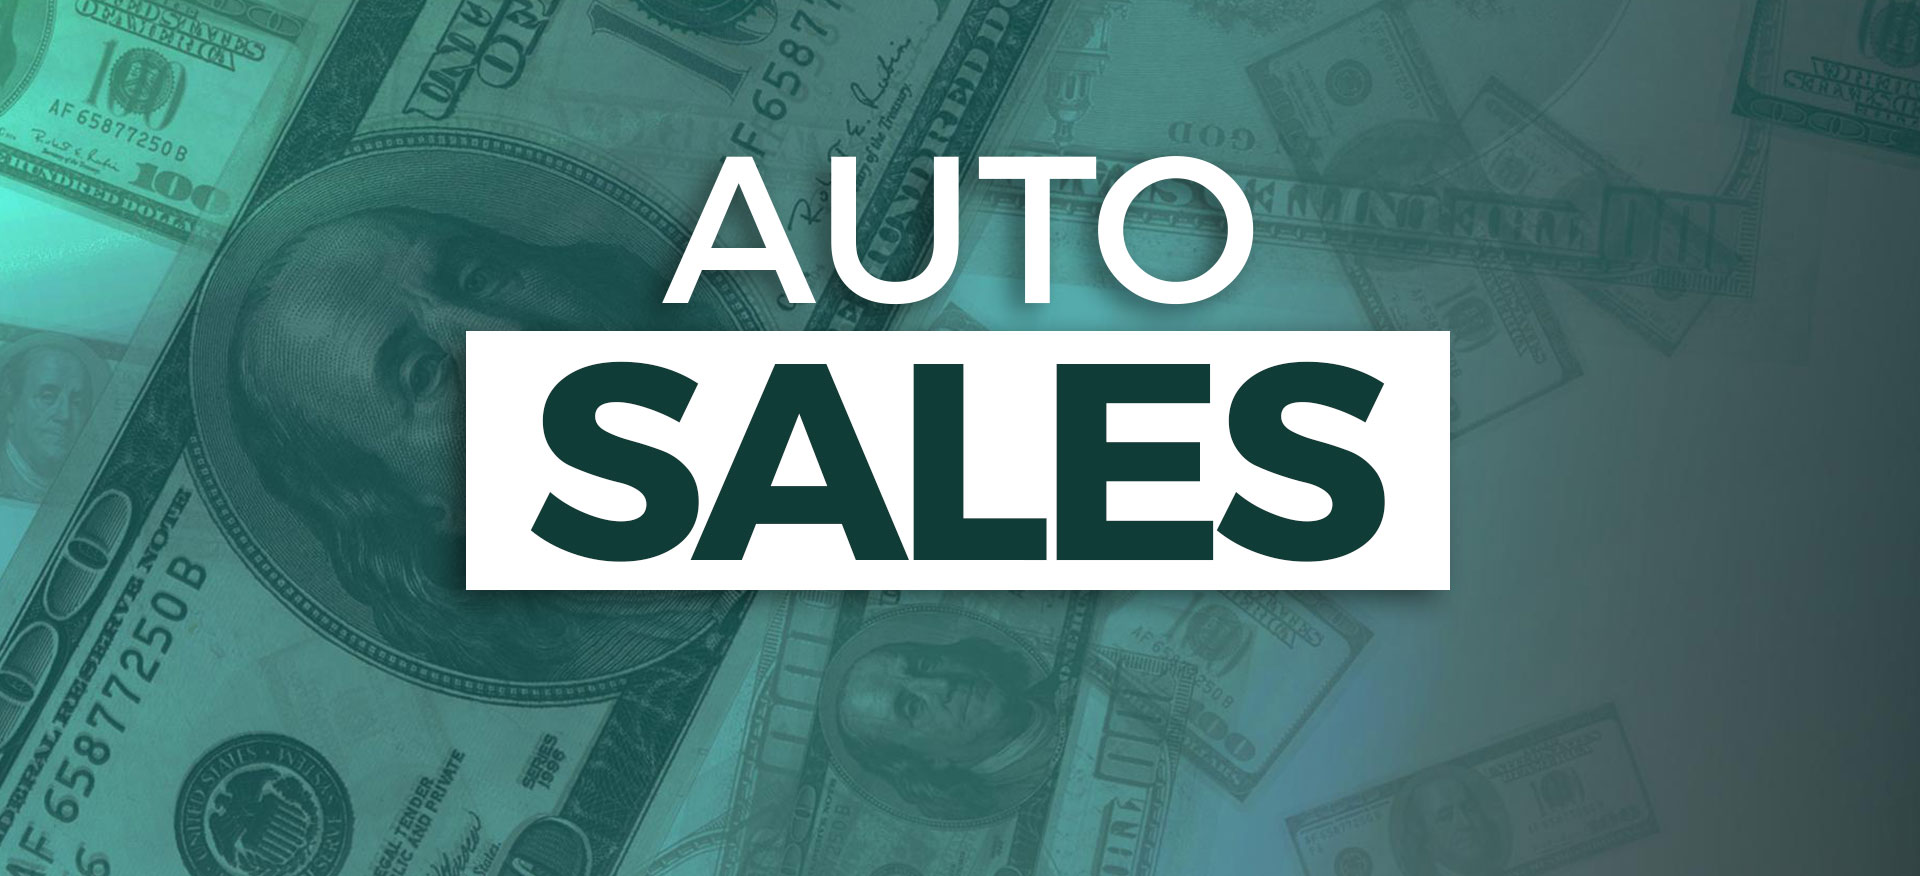 Auto Sales Automobile Sales